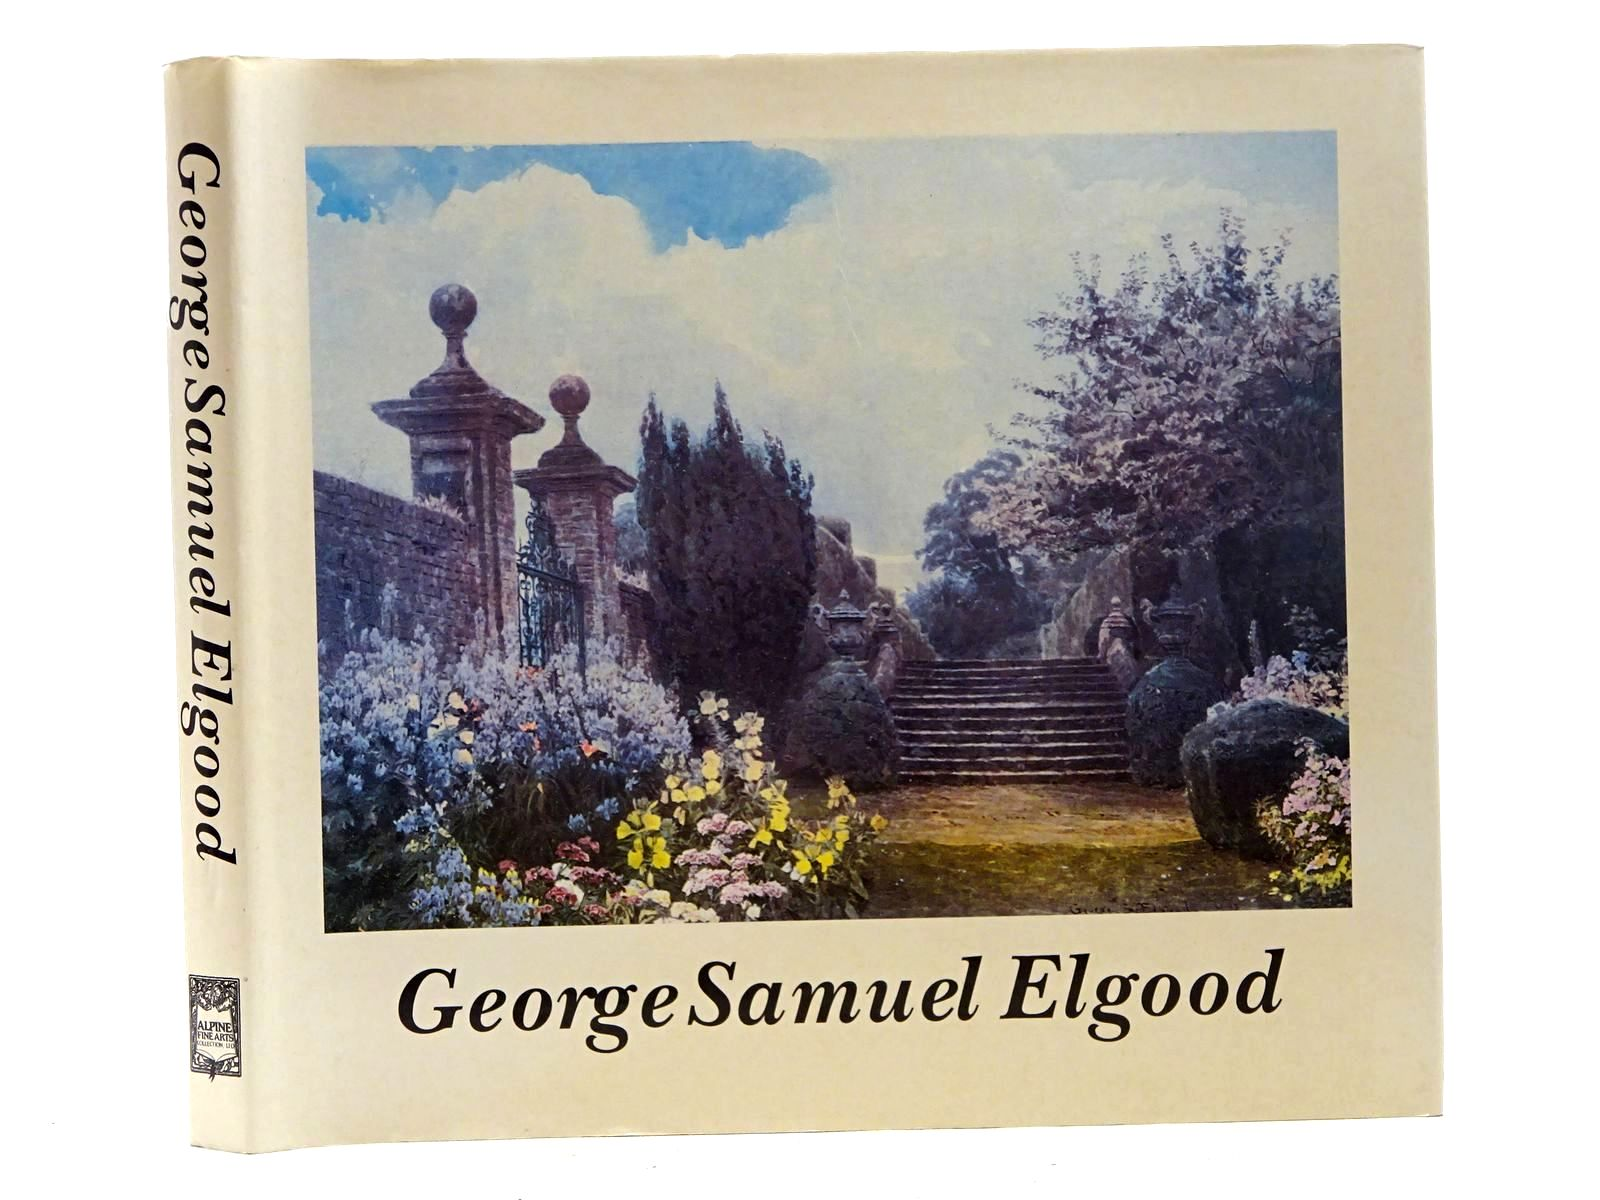 Photo of GEORGE SAMUEL ELGOOD HIS LIFE AND WORK 1851-1943 written by Eckstein, Eve published by Alpine Fine Arts Collection (STOCK CODE: 2125909)  for sale by Stella & Rose's Books